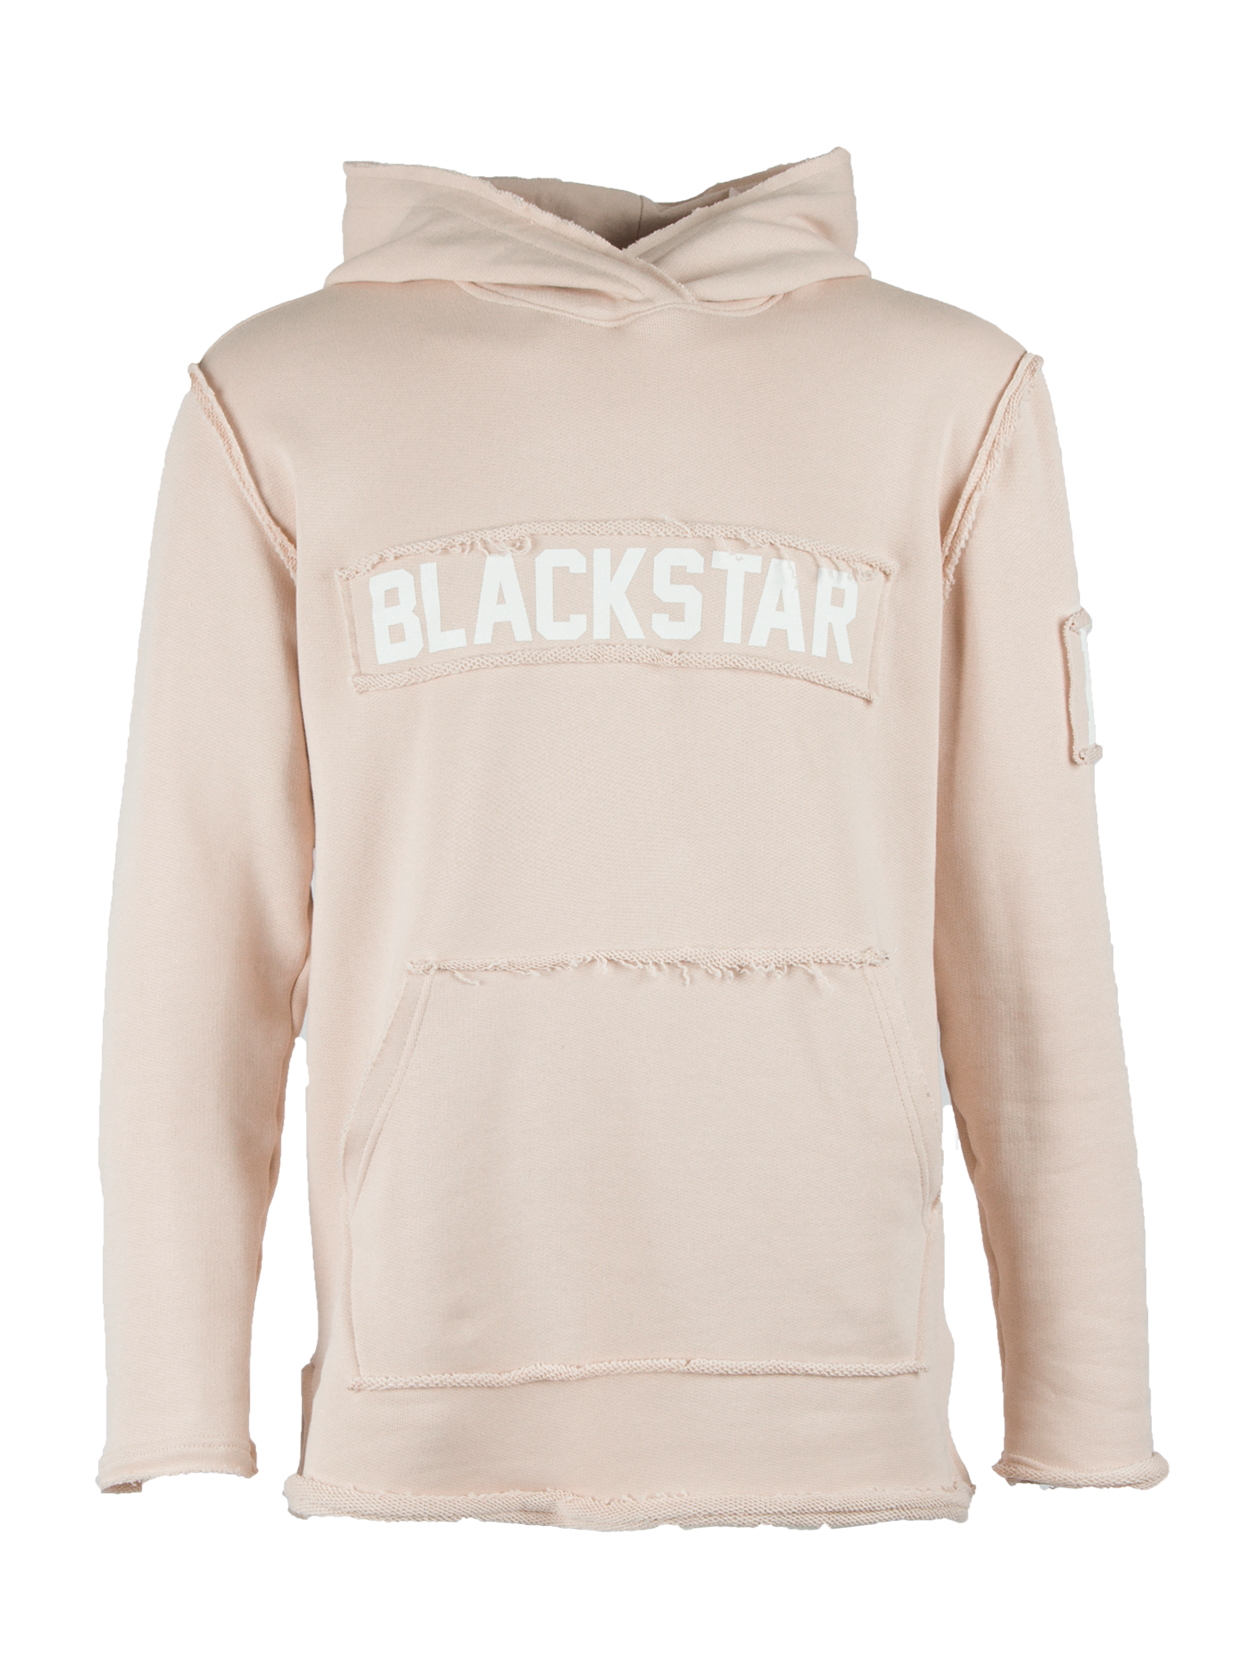 Mens hoodie BS HoodMens hoodie by Black Star Wear. Straight fit, raw cuts and seams, big hood and front pocket. Natural and soft cotton material. Patch Blackstar on the chest and 13 on the left sleeve. Avaliable in khaki.<br><br>size: S<br>color: Beige<br>gender: male